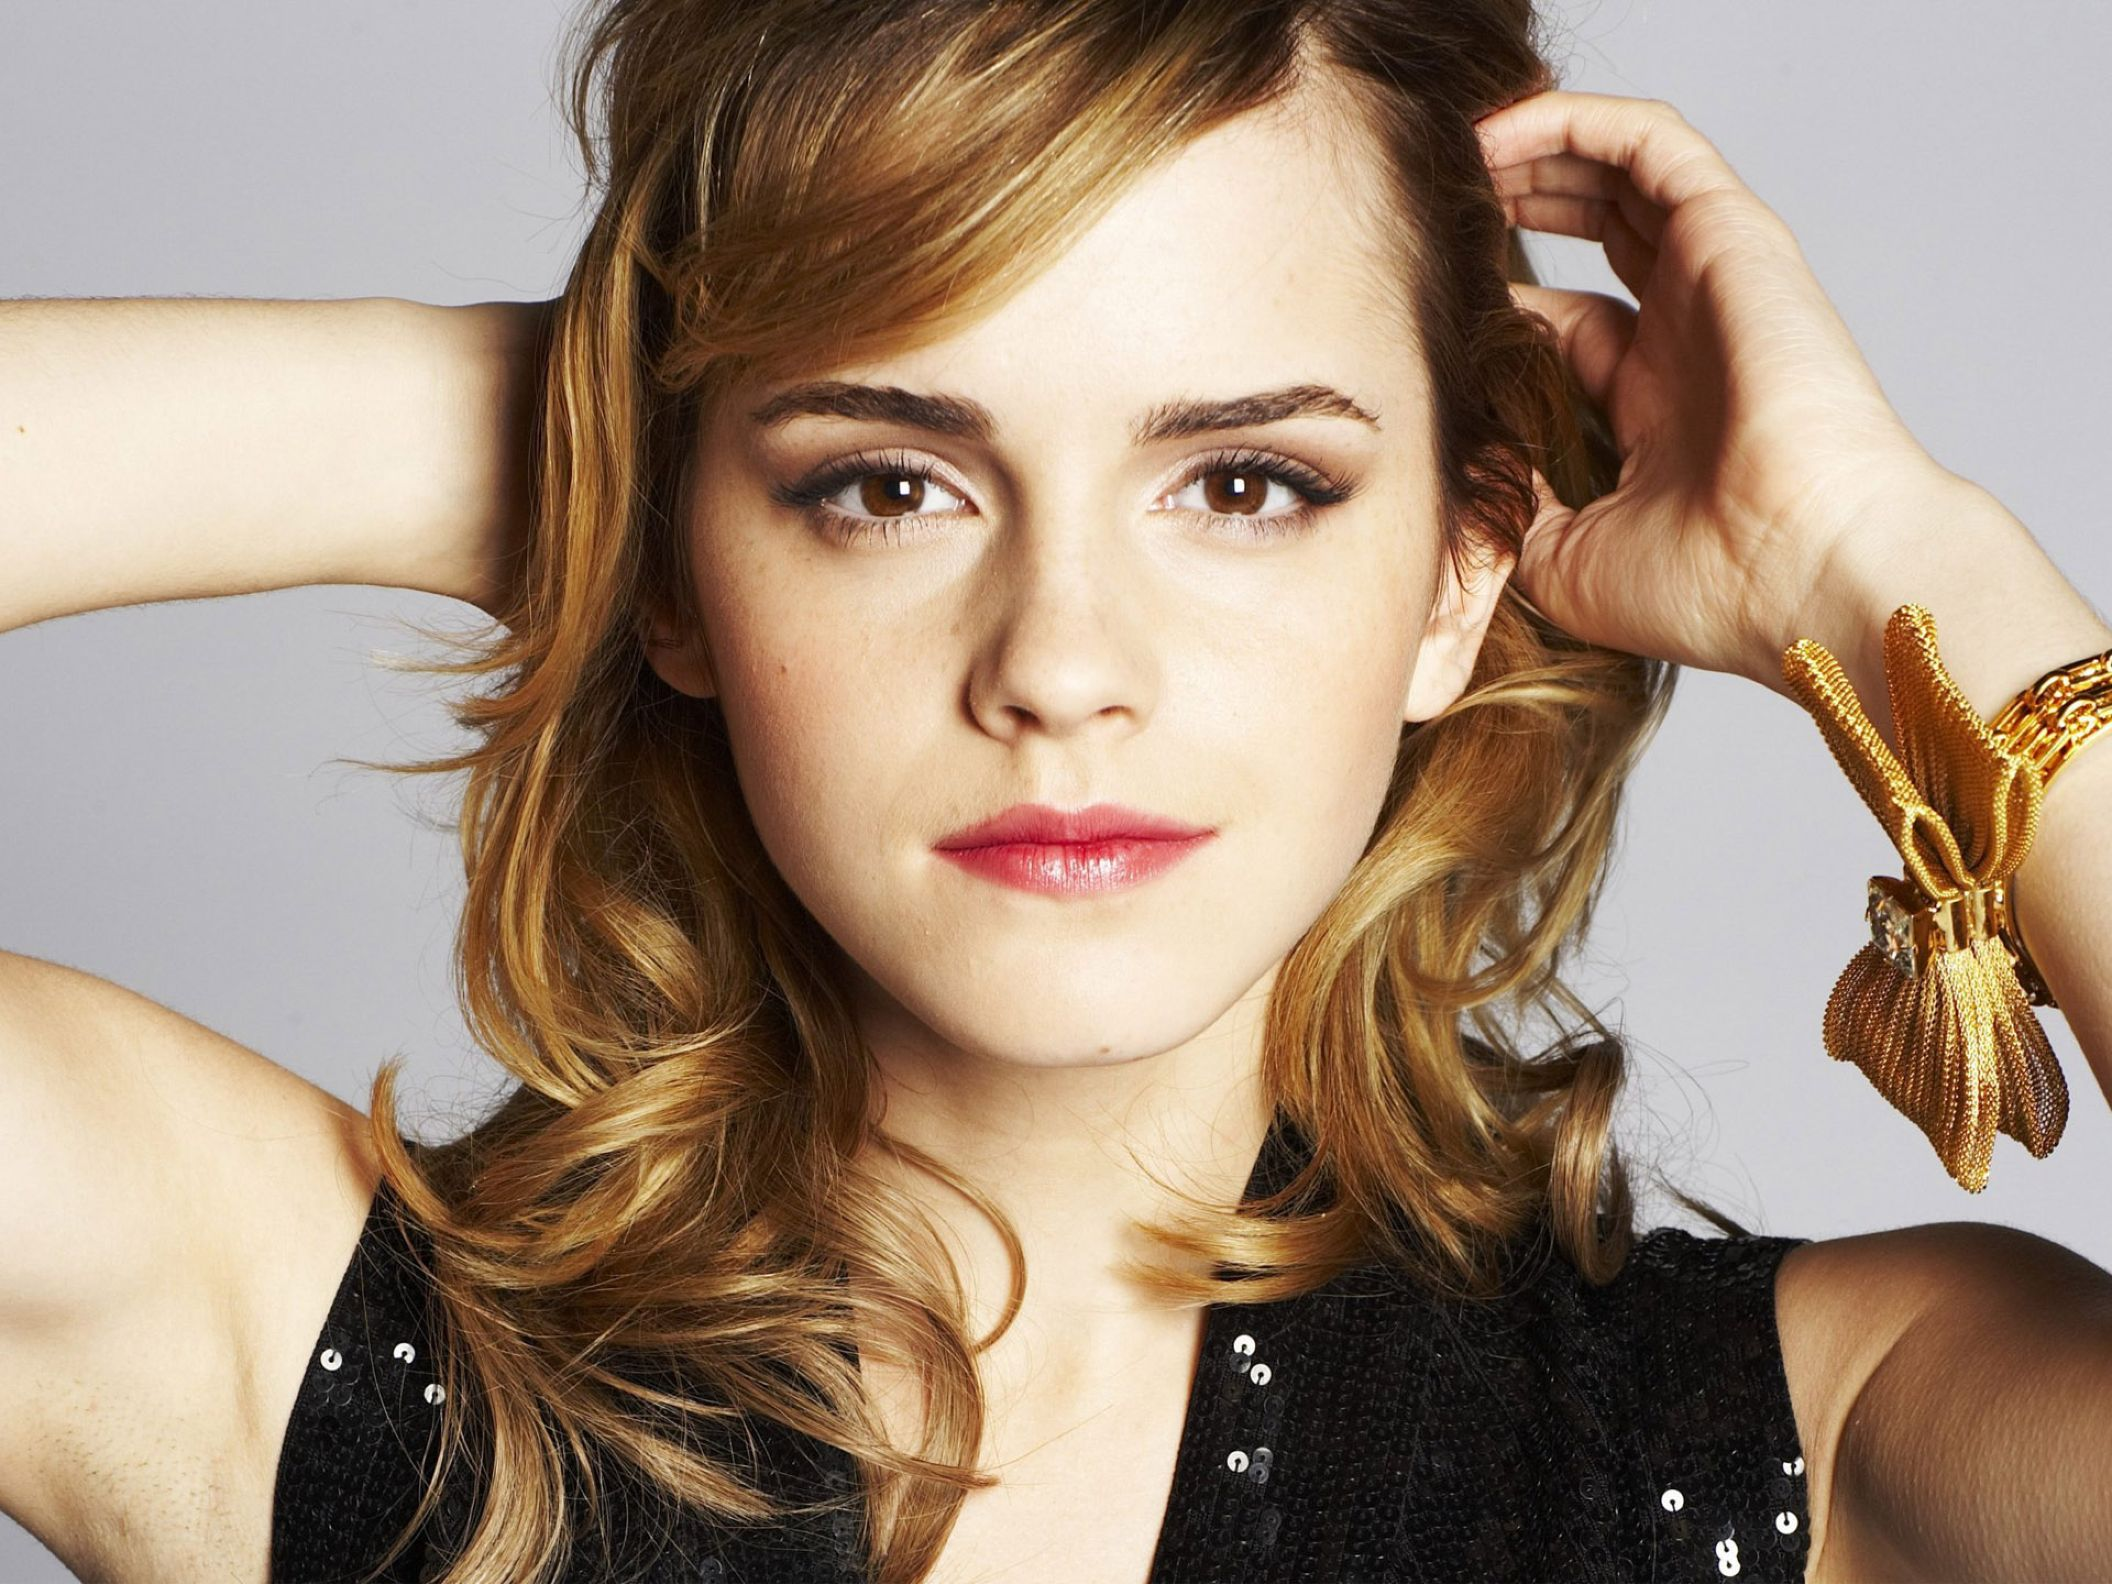 Download free HD Emma Watson Hd 2 Normal Wallpaper, image